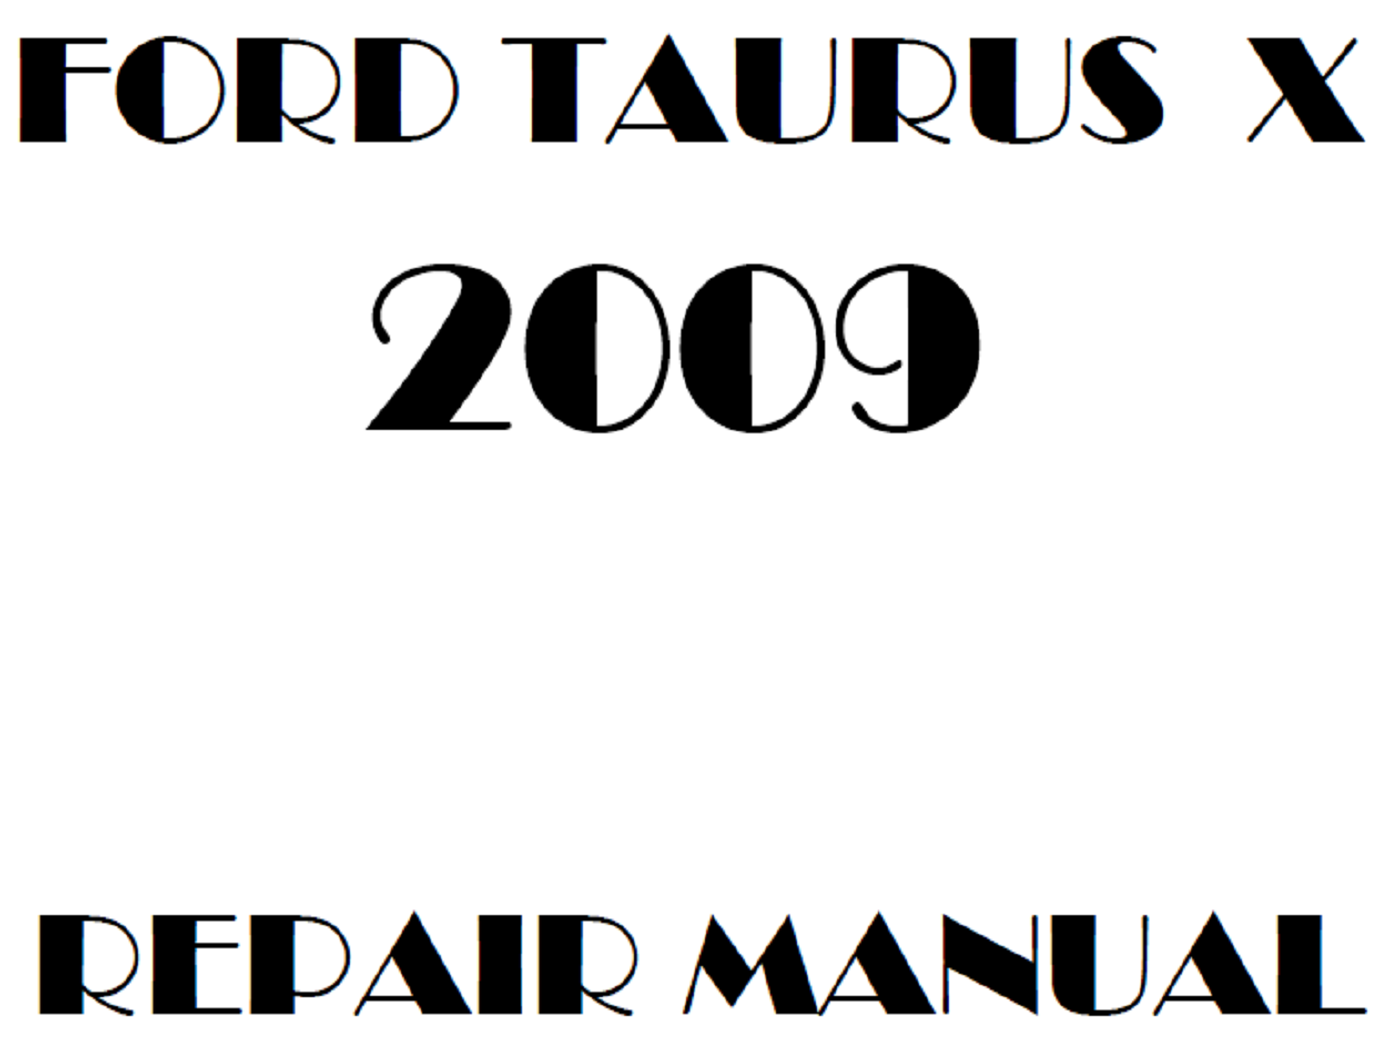 2009 Ford Taurus X Repair Manual